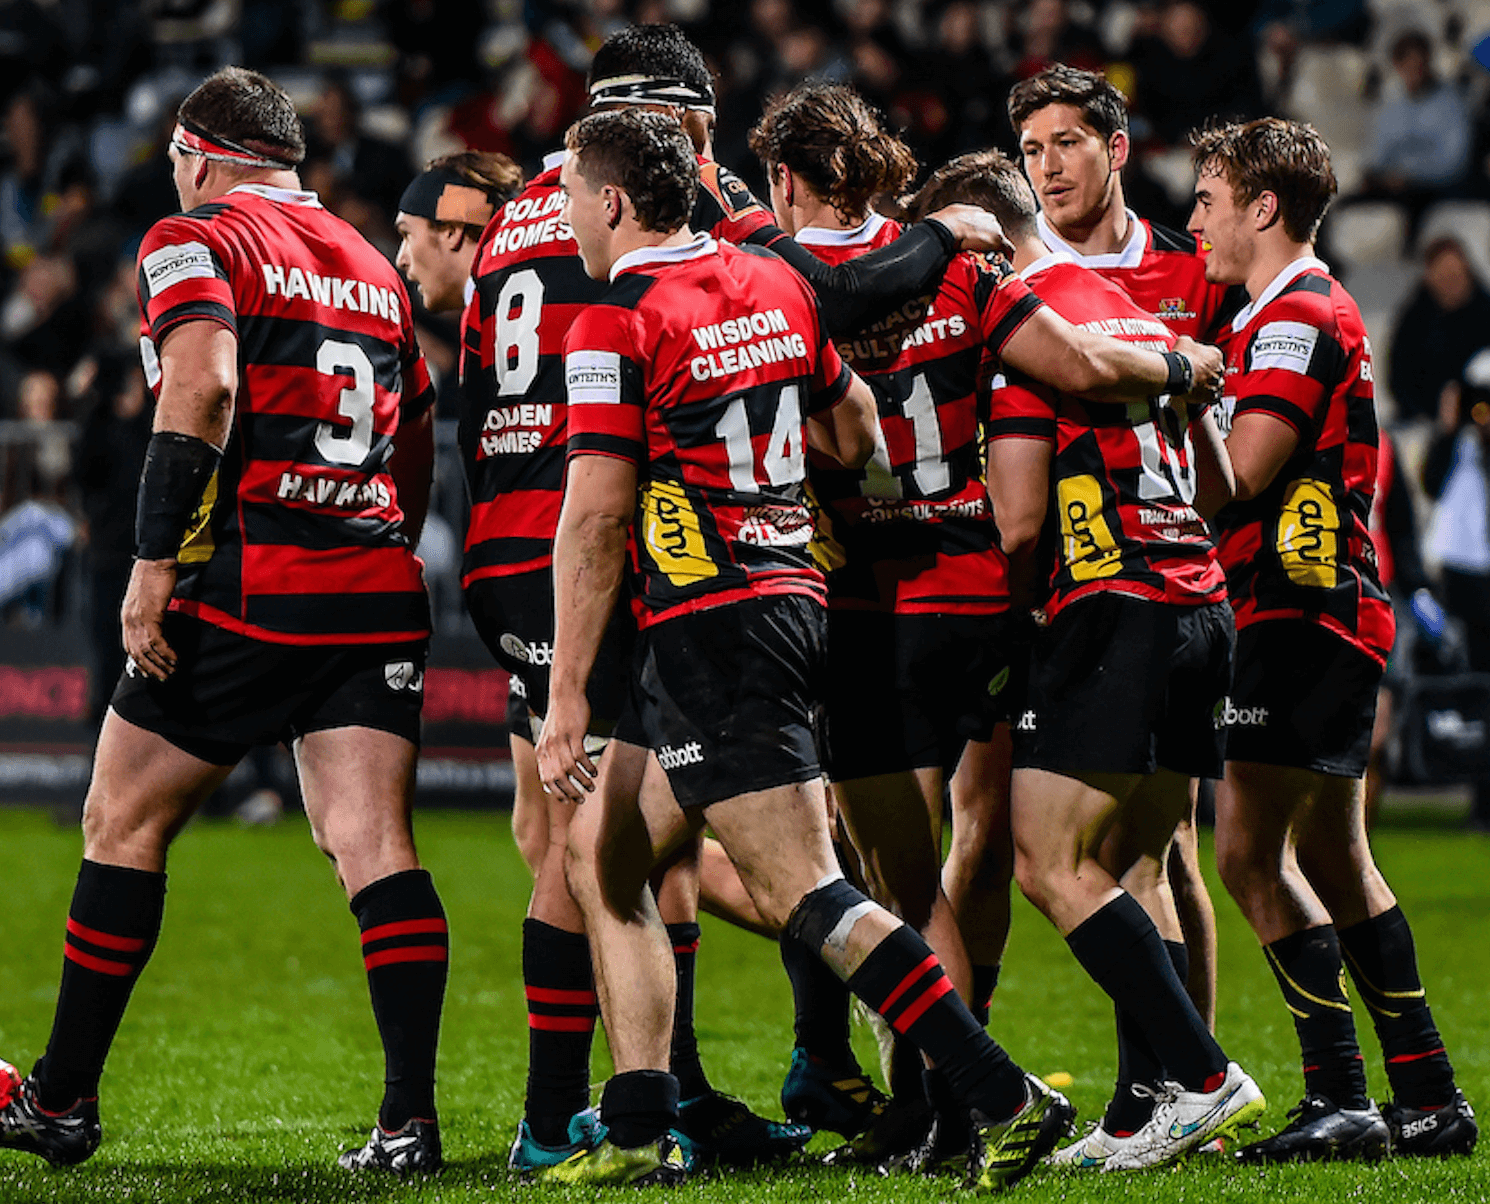 14 Sept 2018 - Canterbury team named for top-of-the-table clash with